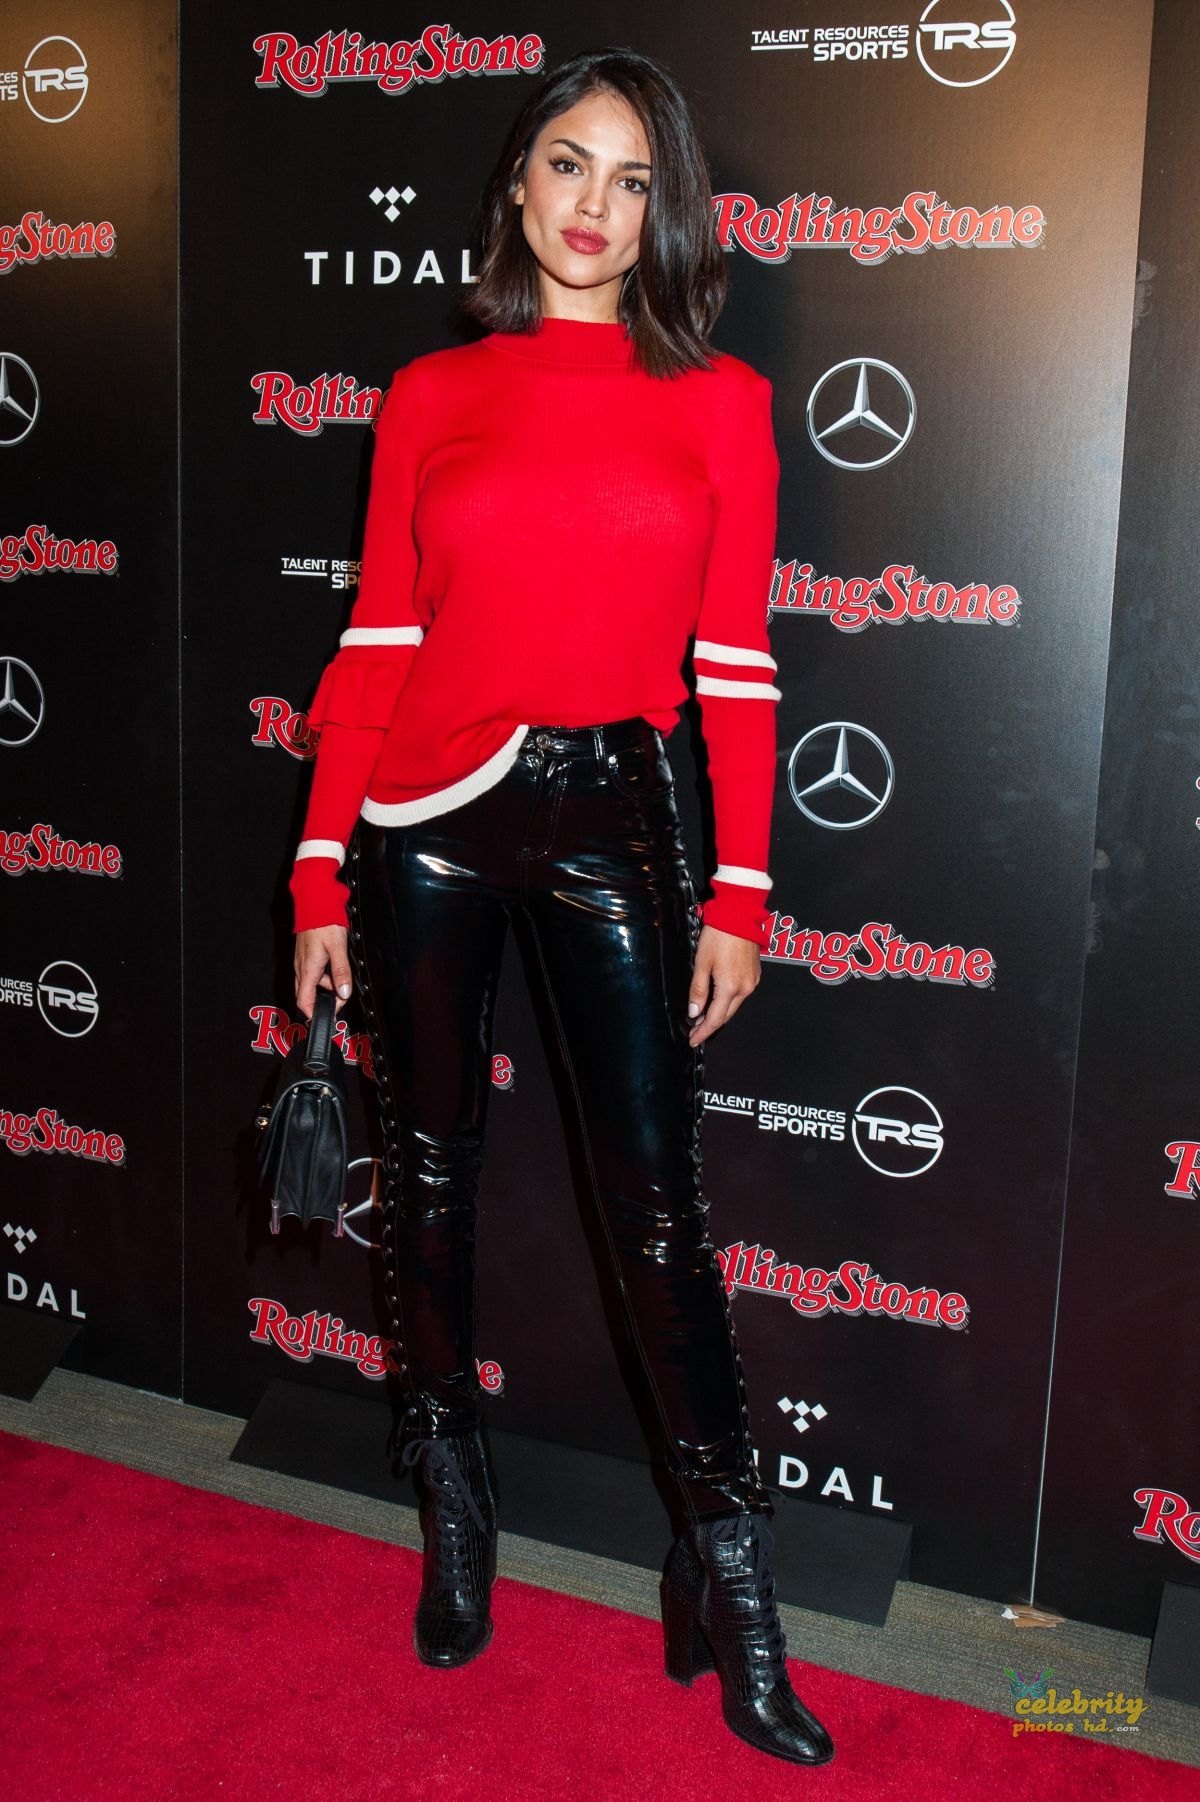 EIZA GONZALEZ at Rolling Stone Live Super Bowl Party in Minneapolis (3)